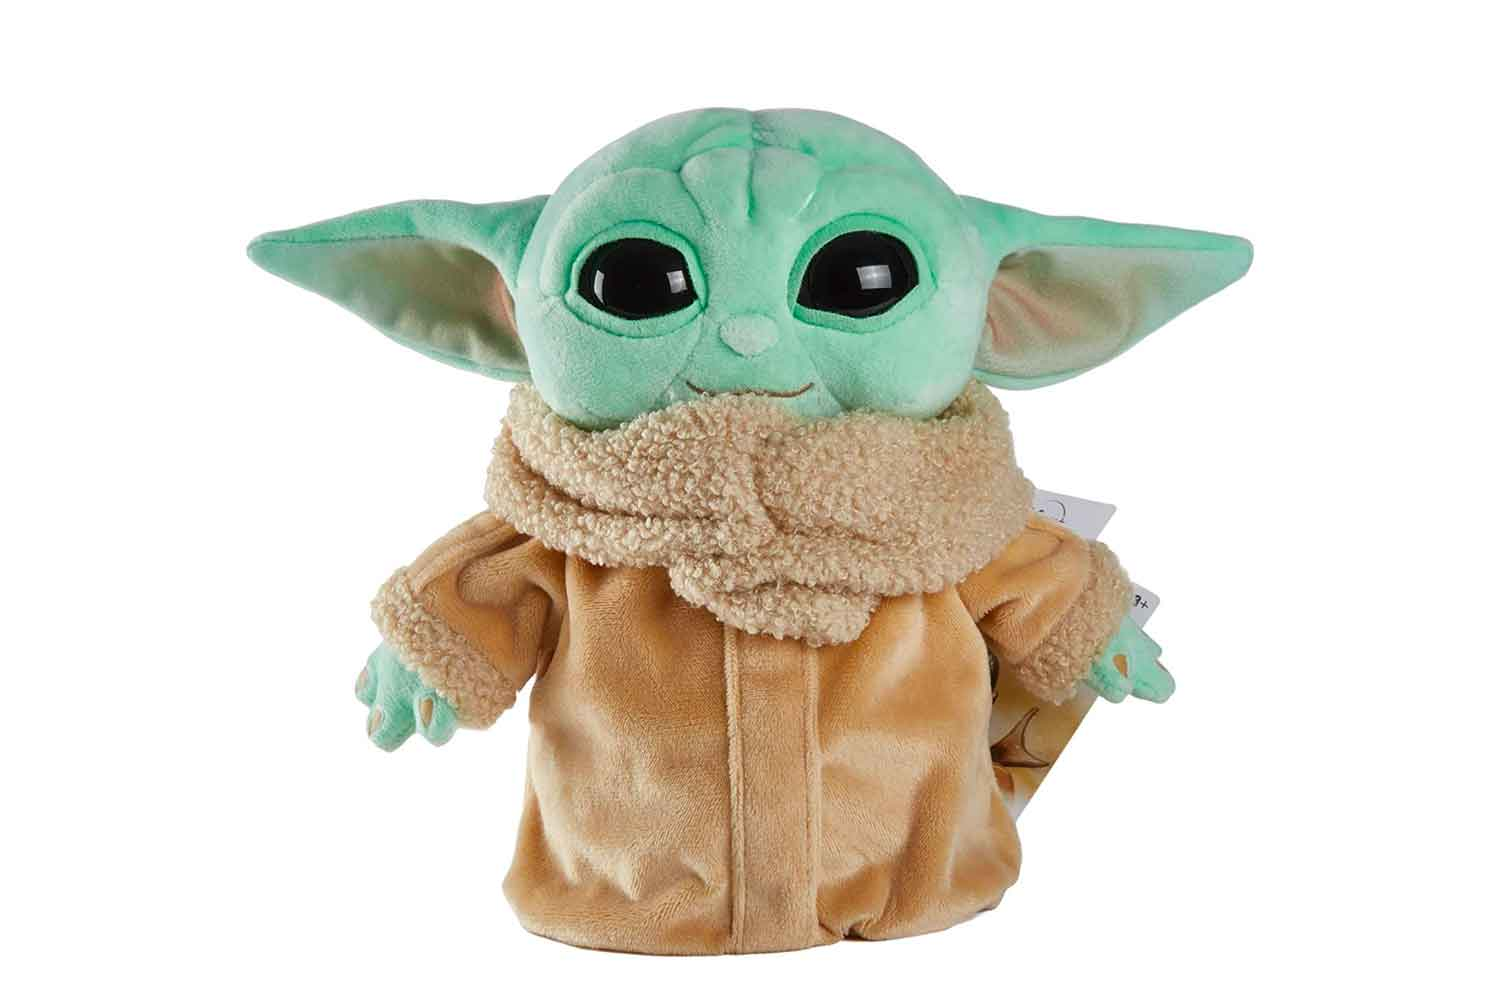 Mattel Star Wars The Child Plush Toy, 8-in Small Yoda Baby Figure from The Mandalorian, Collectible Stuffed Character for Movie Fans of All Ages, 3 and Older, Green